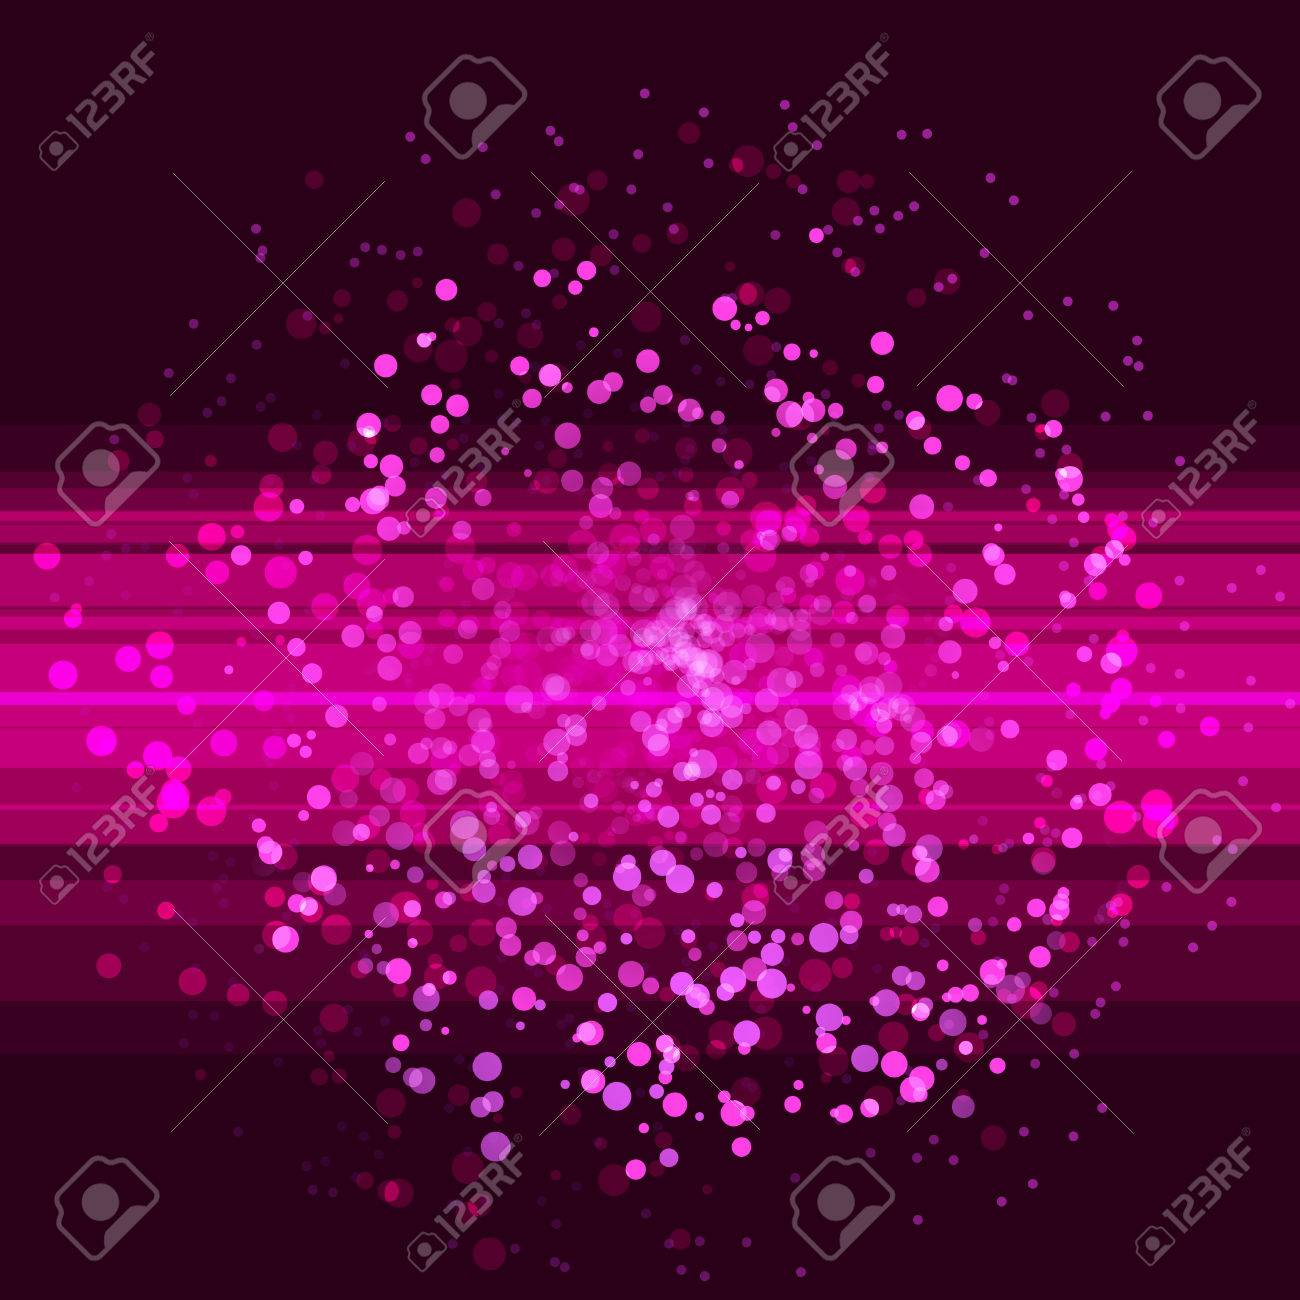 Pink Glitter Abstract Club Background Royalty Free Cliparts